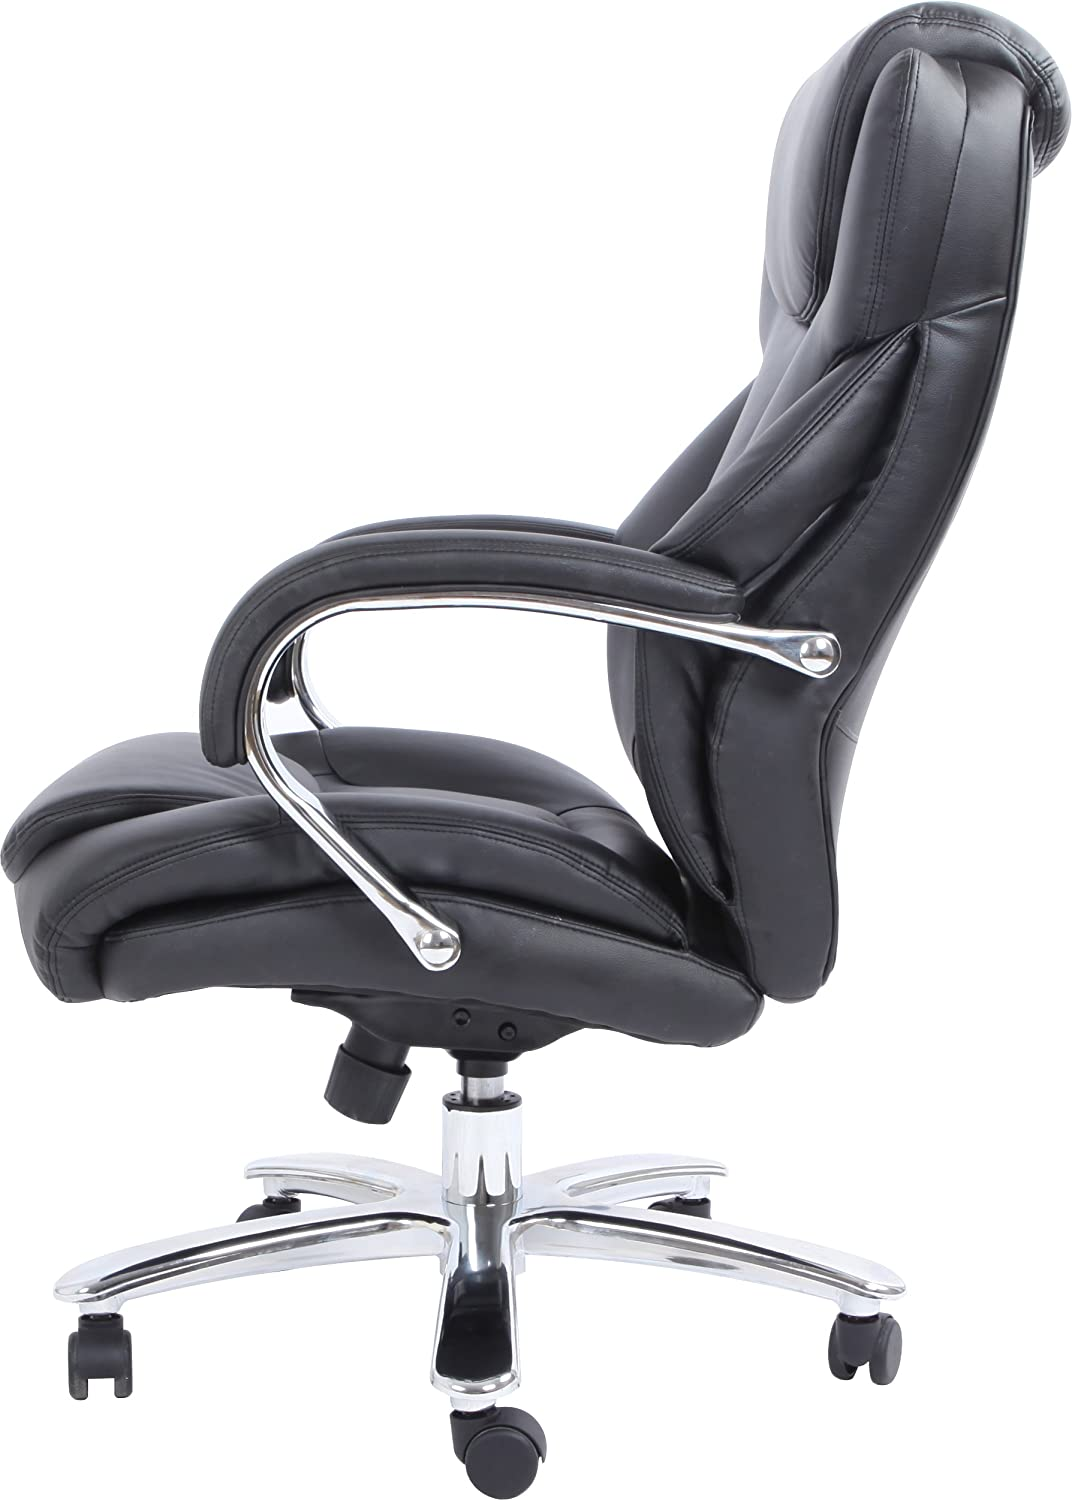 Extra Wide Office Chairs Whats The Widest For Big